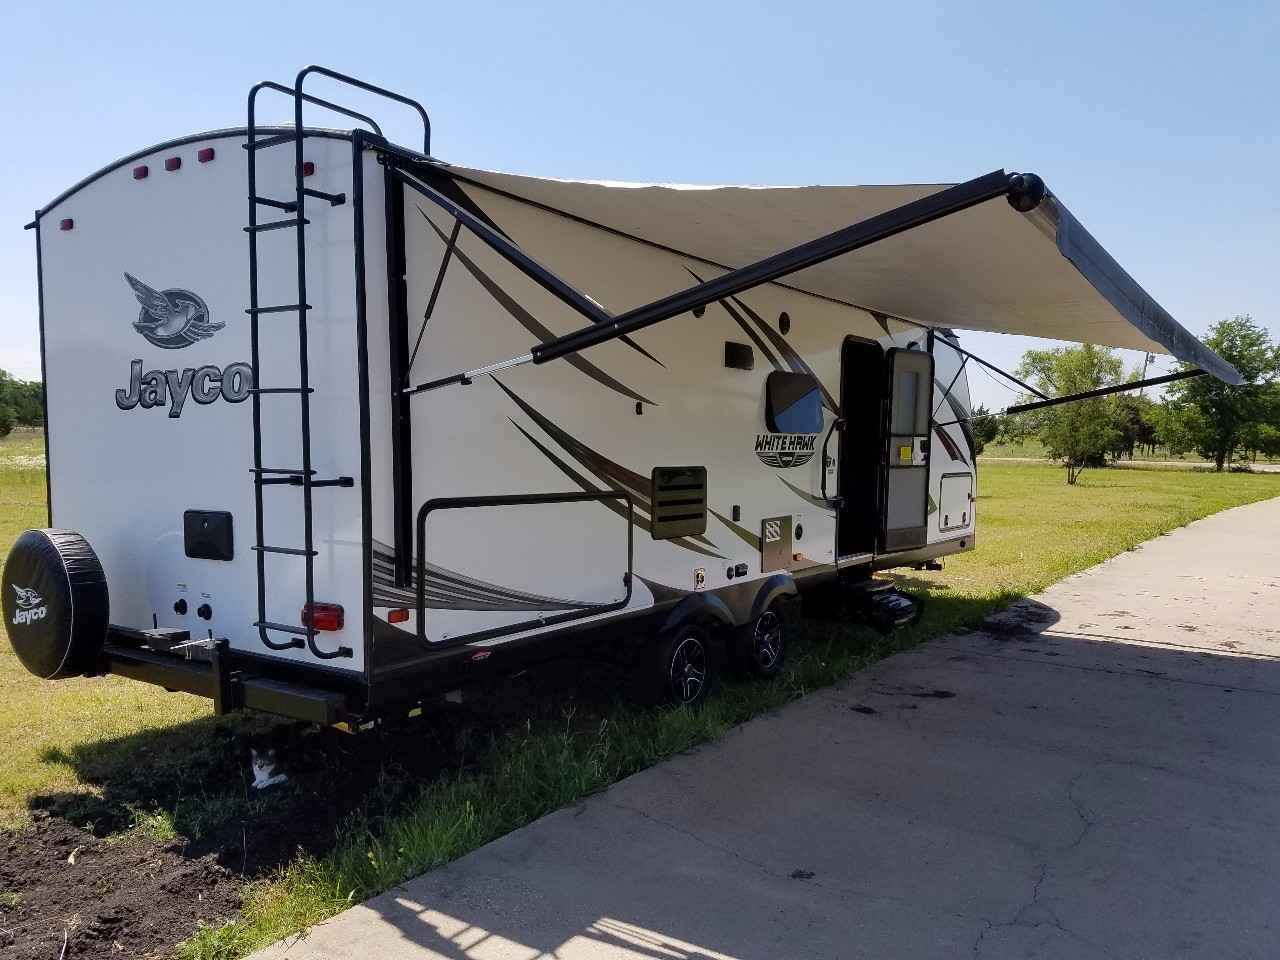 Unique I Really Dont See An End In Sight, Said Derald Bontrager, President And CEO Of RV Manufacturer Jayco Inc The Demographics Are All In Our Favor Indianabased Jayco Has Expanded Production Space And Added Several Hundred